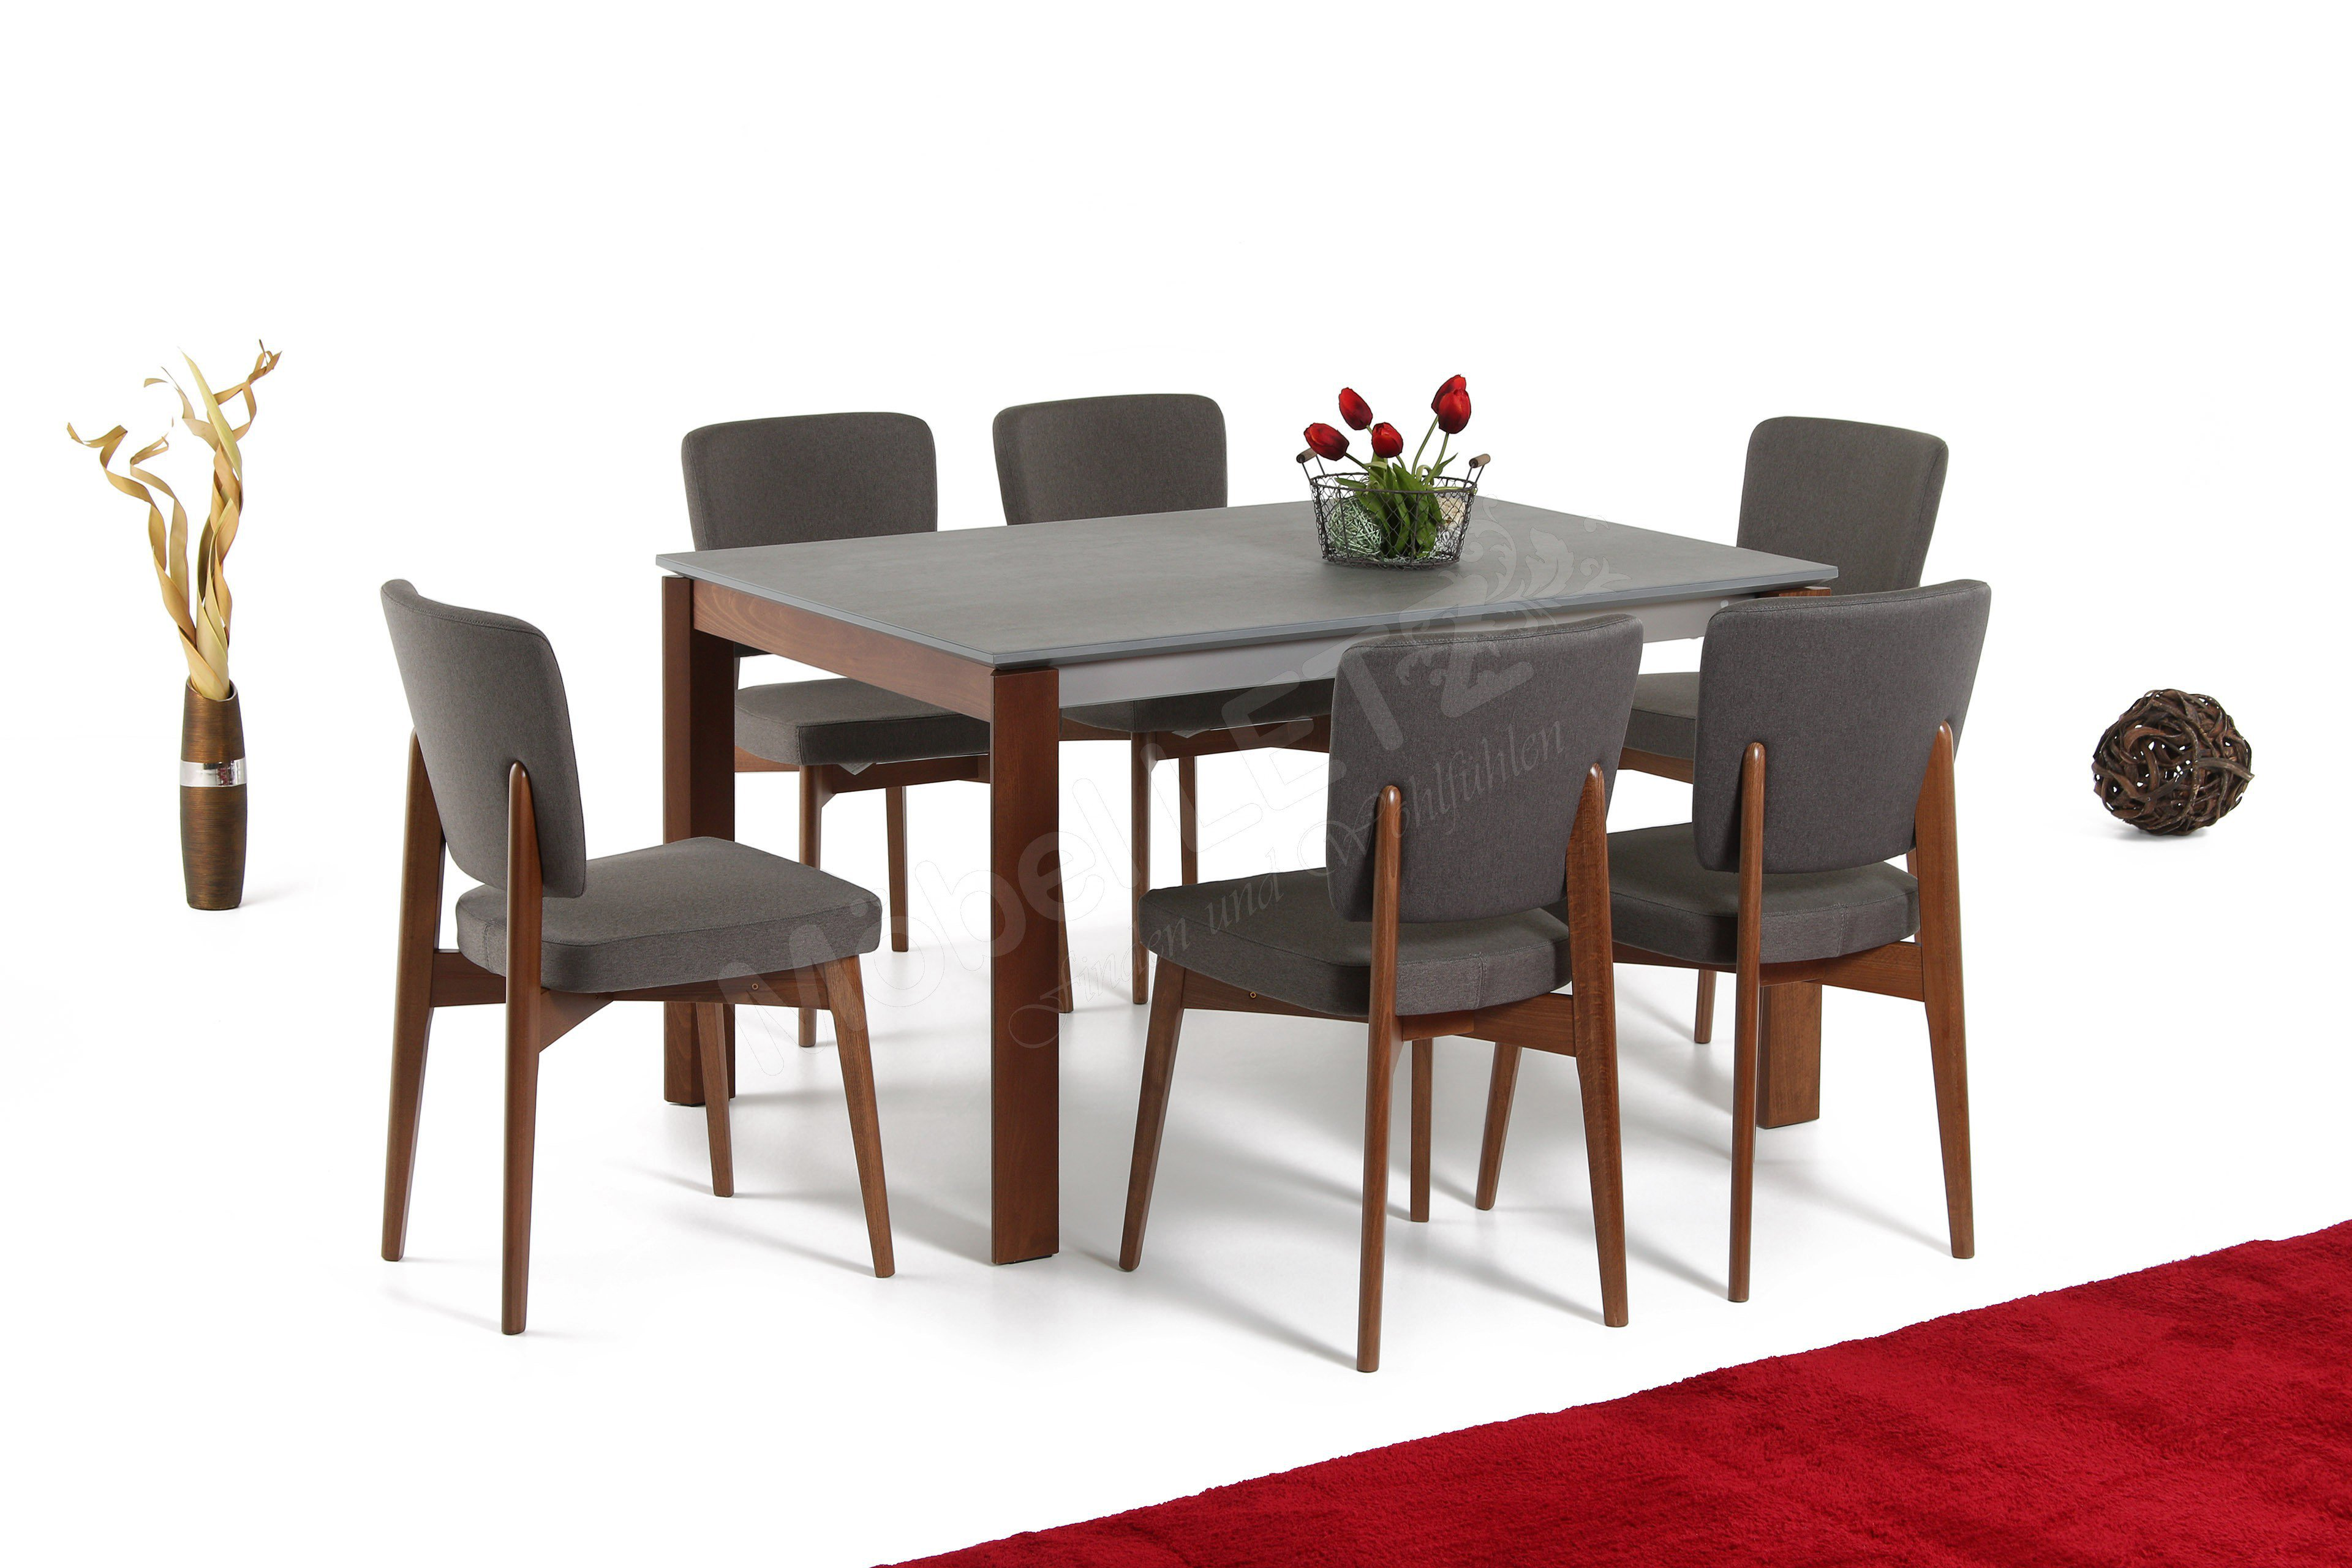 Esstisch Zement ~ connubia by calligaris Esstisch Eminence Keramik zement  Möbel Letz  Ihr On